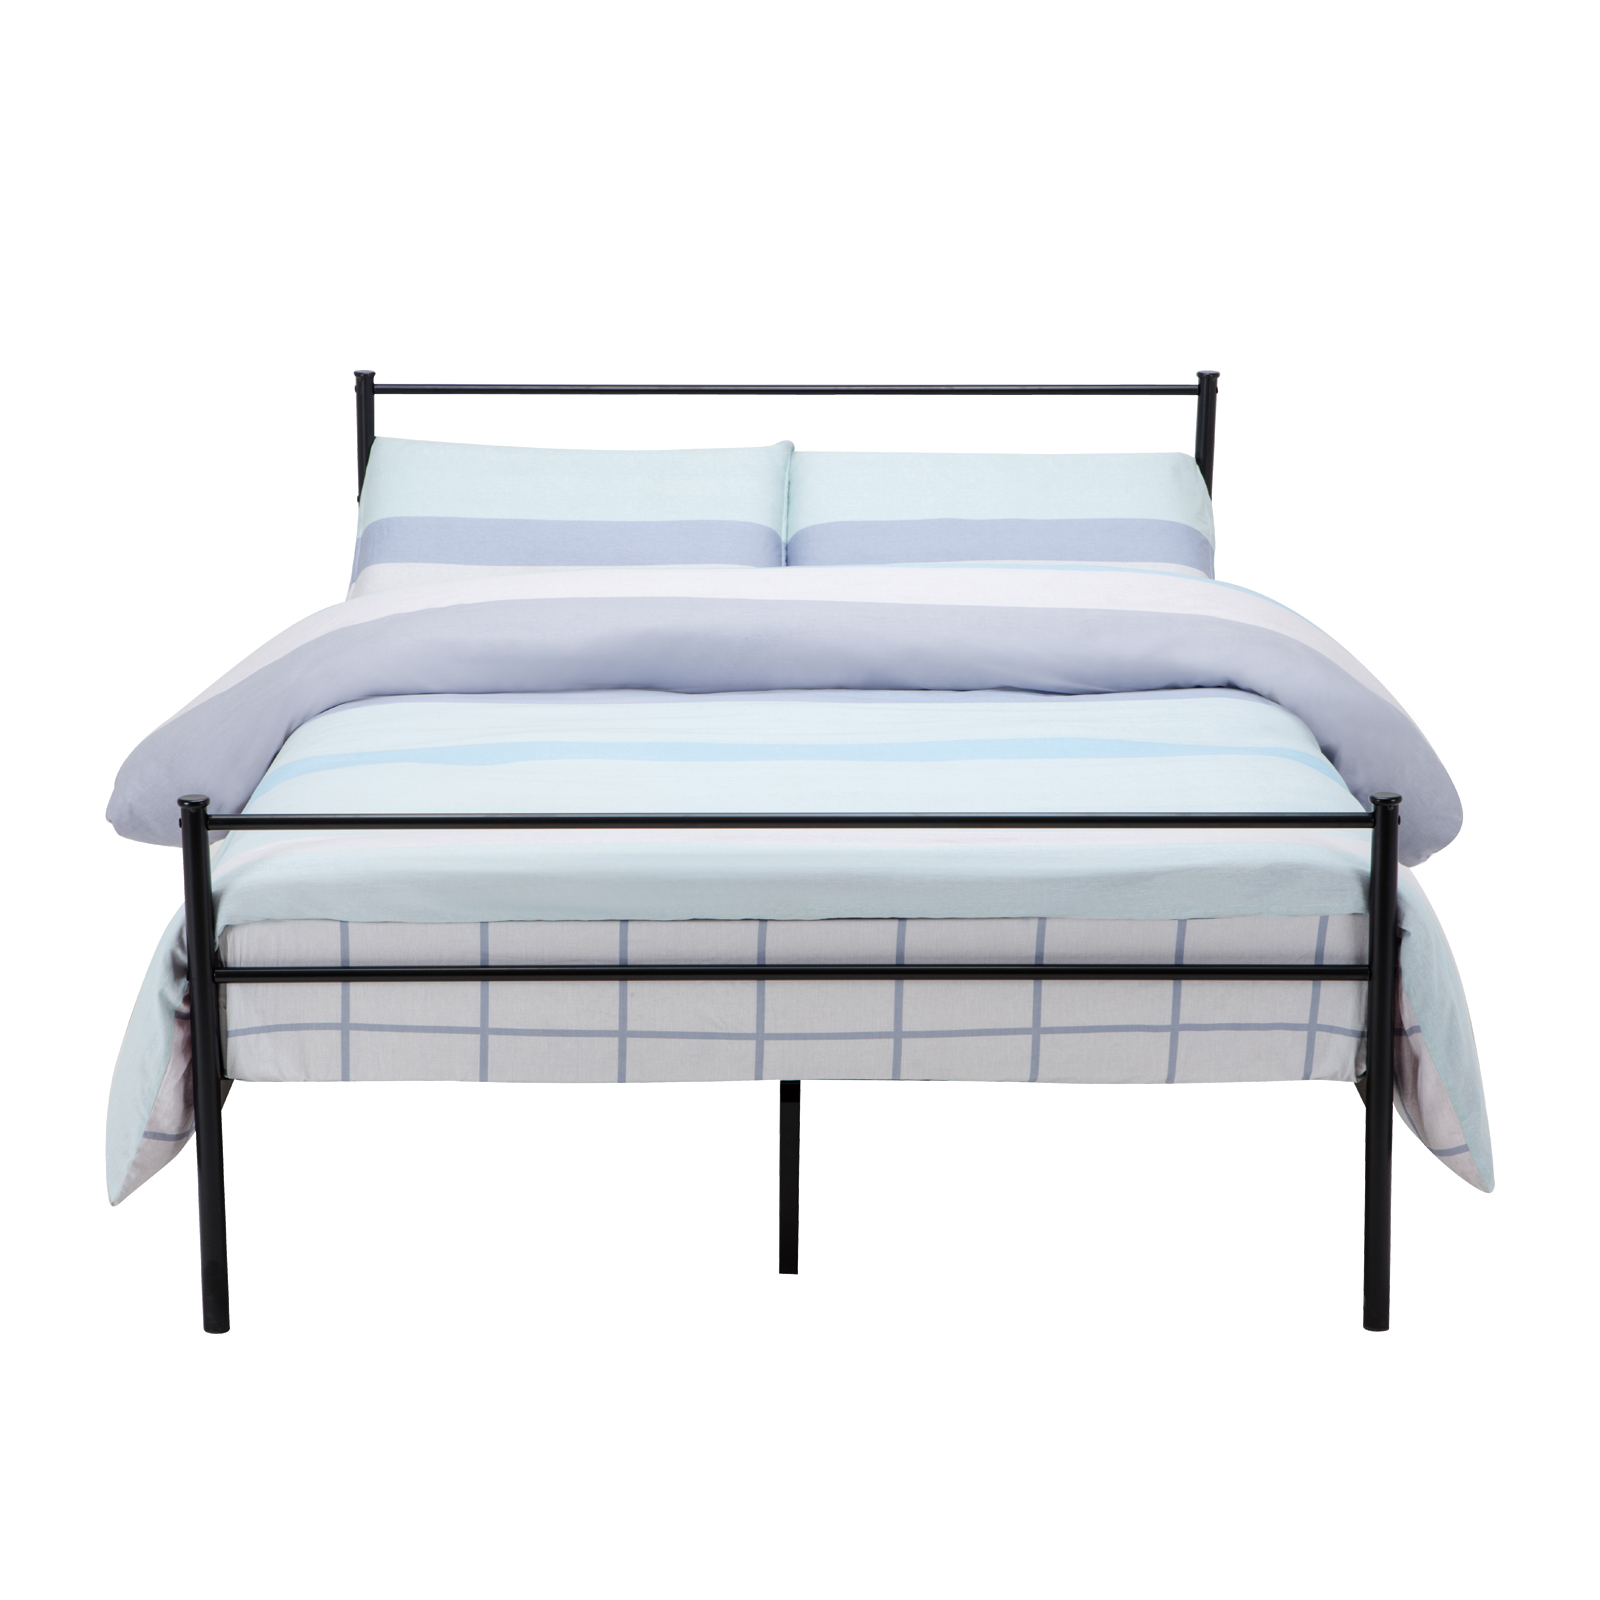 Twin full queen size metal bed frame platform headboards 6 for Full size bedroom furniture